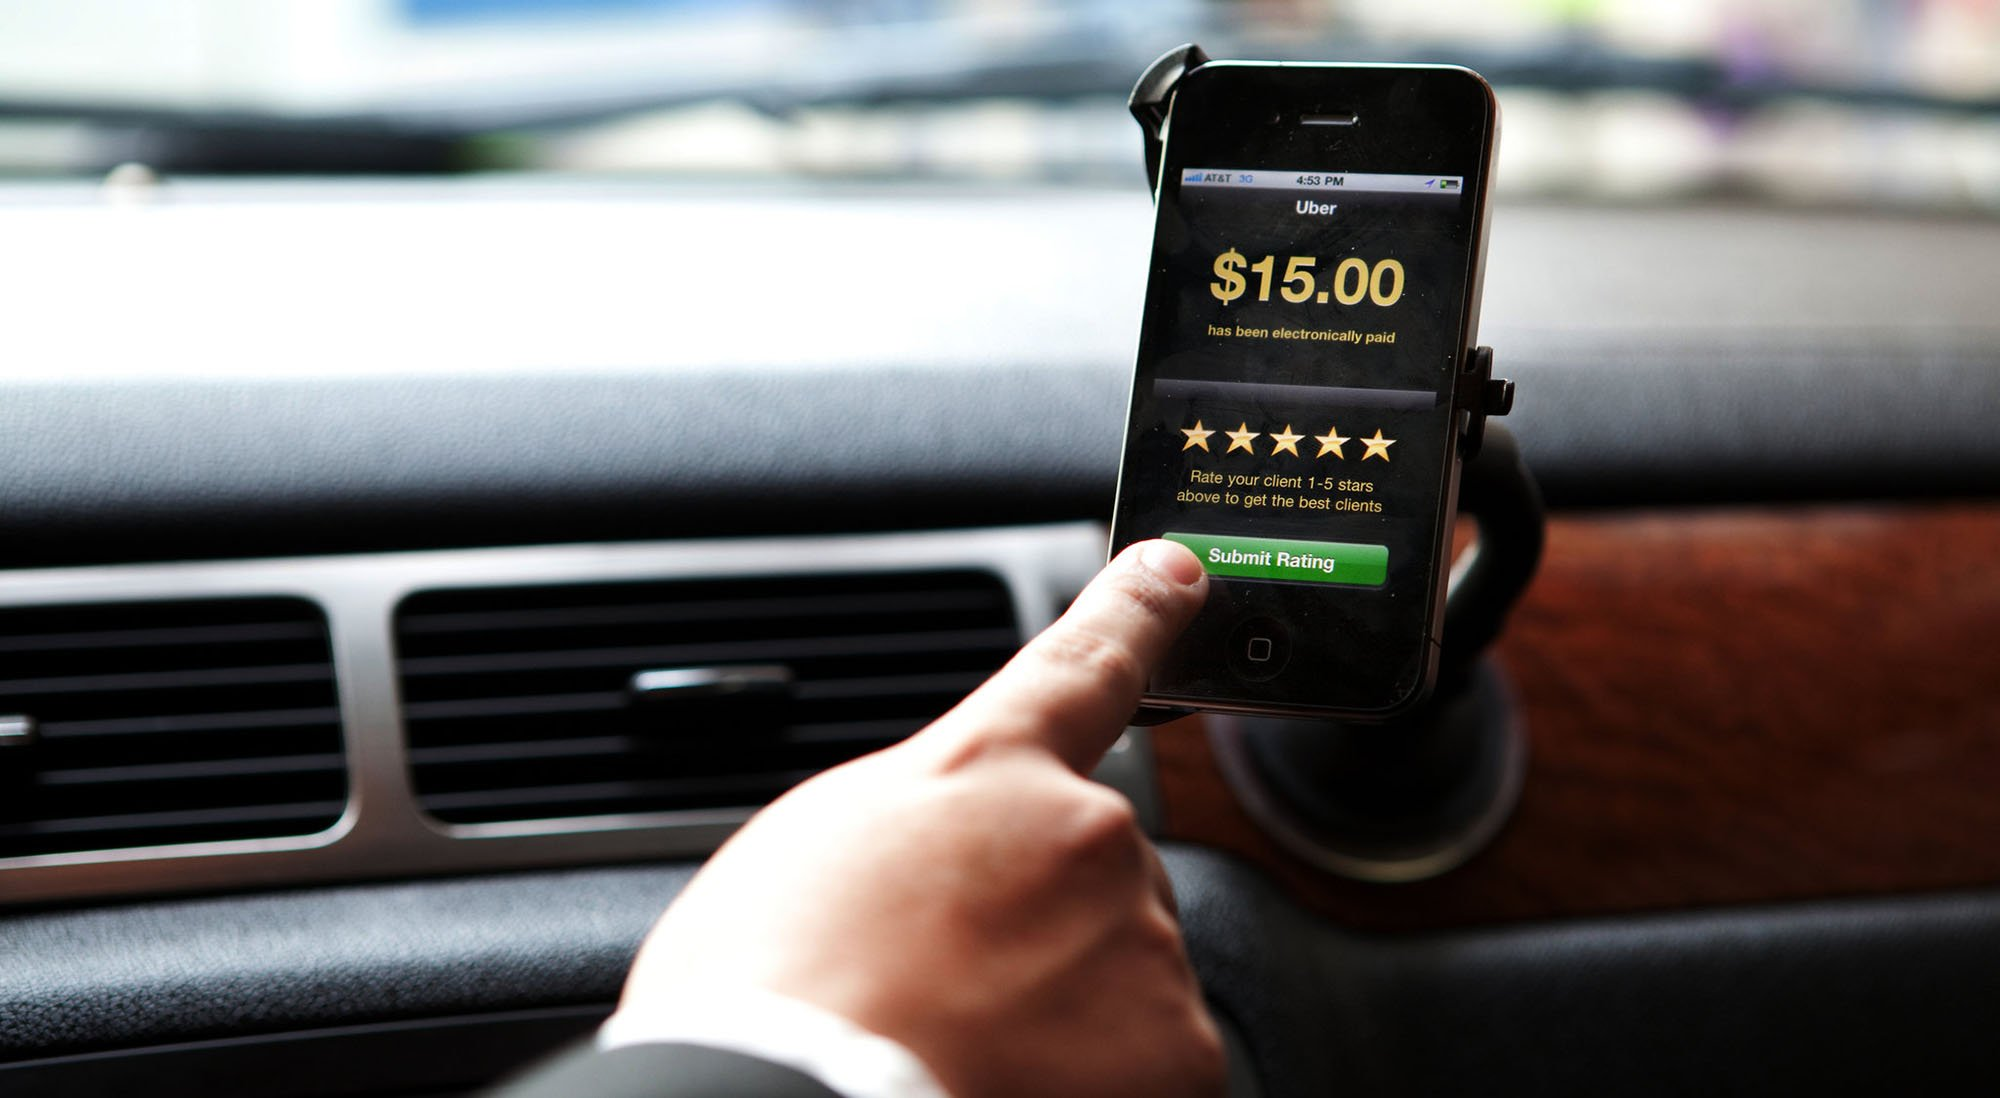 The ride-sharing service Uber is probably the best-known of the gig or sharing economy businesses that use web apps to link consumers to providers who typically work as independent contractors. (Source: Melies The Bunny/Creative Commons)